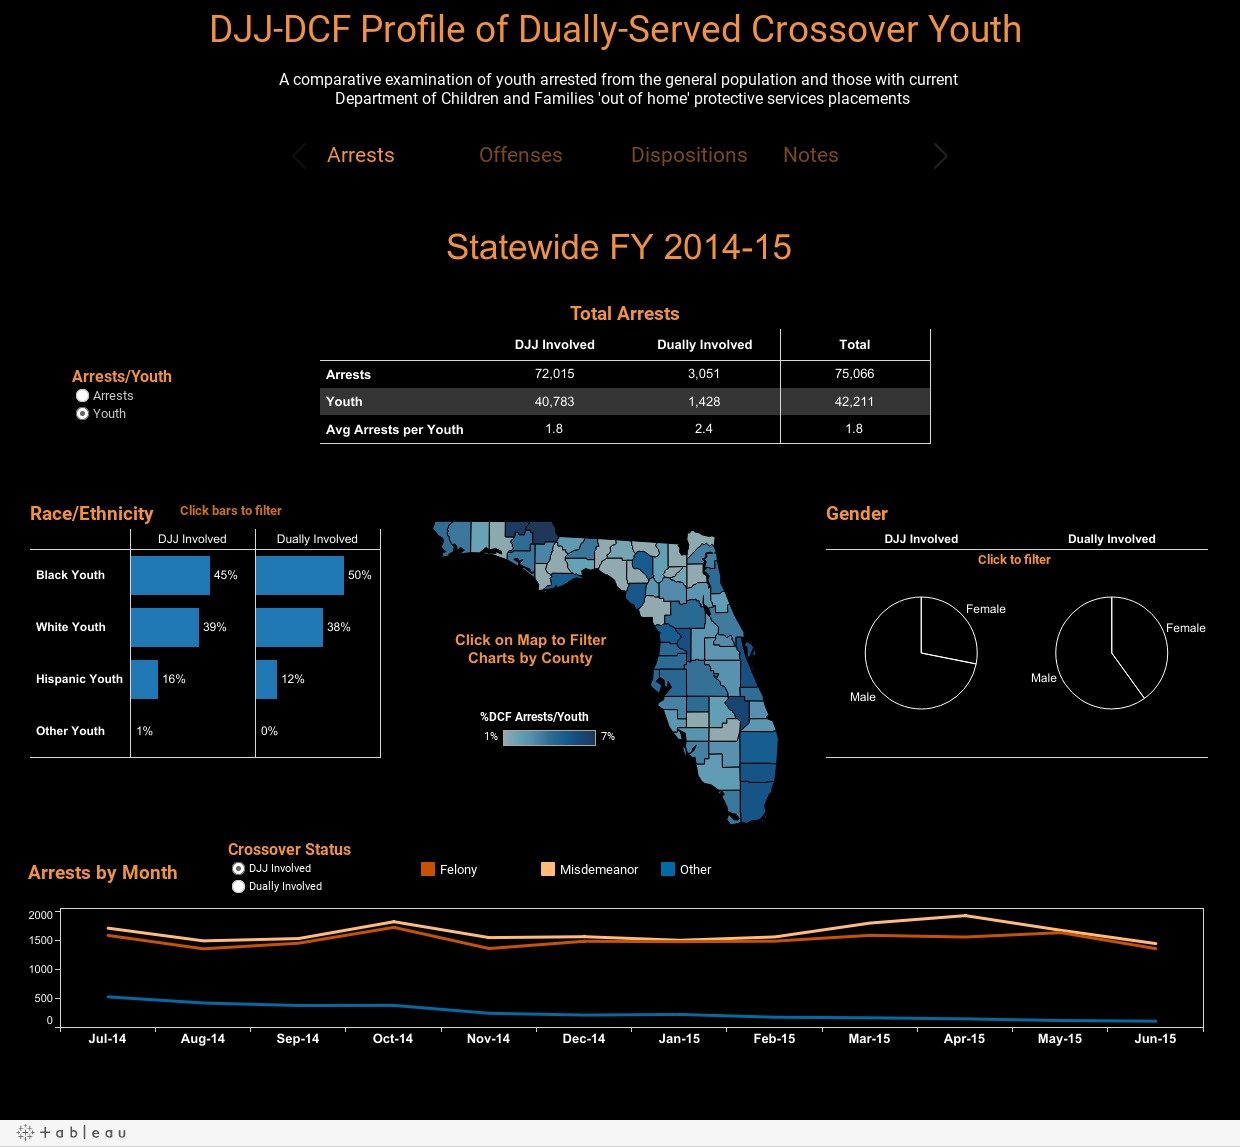 DJJ-DCF Profile of Dually-Served Crossover Youth A comparative examination of youth arrested from the general population and those with current  Department of Children and Families 'out of home' protective services placements